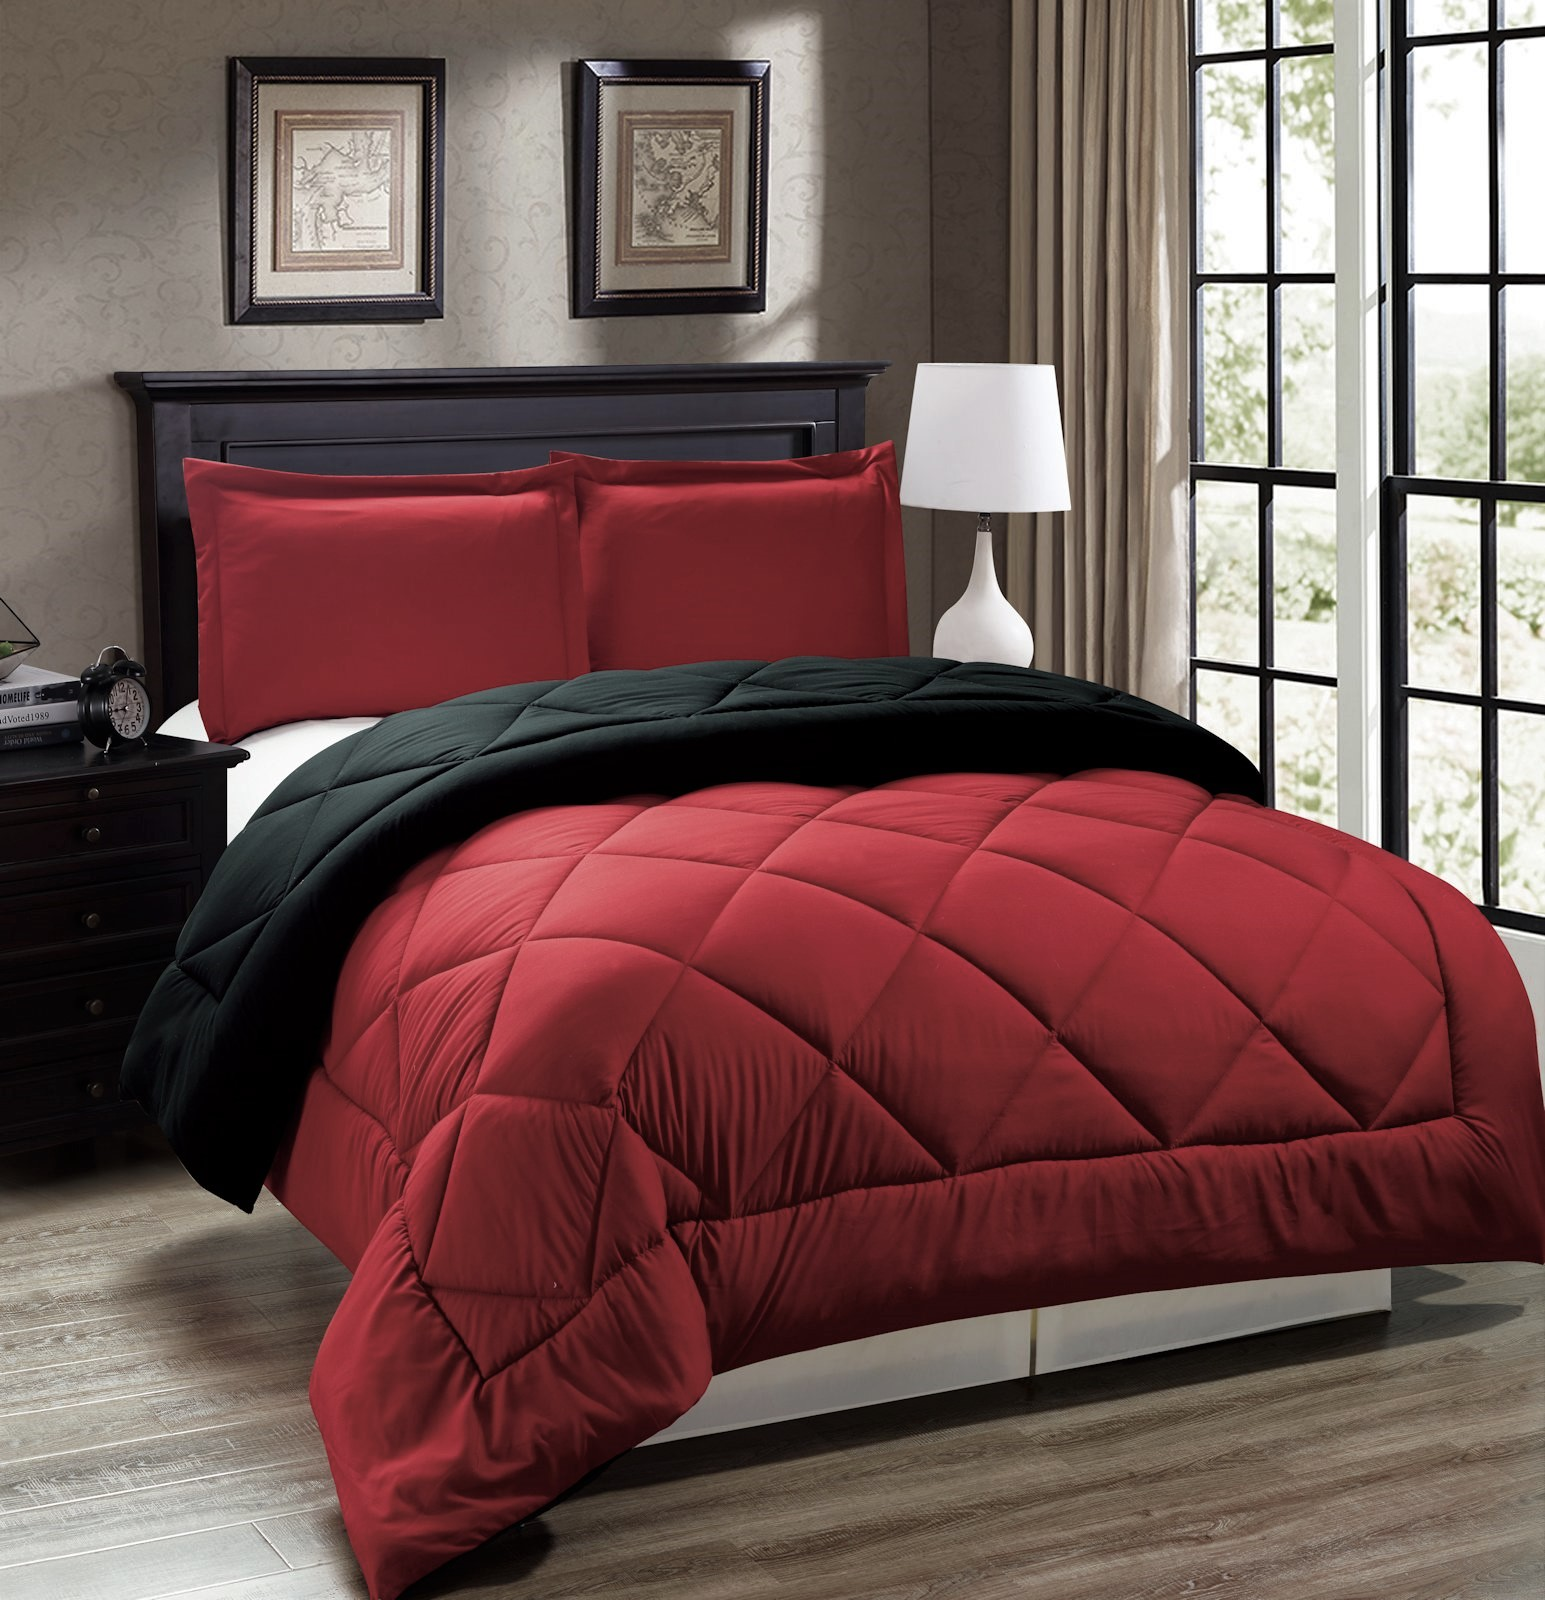 Legacy Decor 2pc Down Alternative, Reversible Comforter Set Red and Black, Twin Size